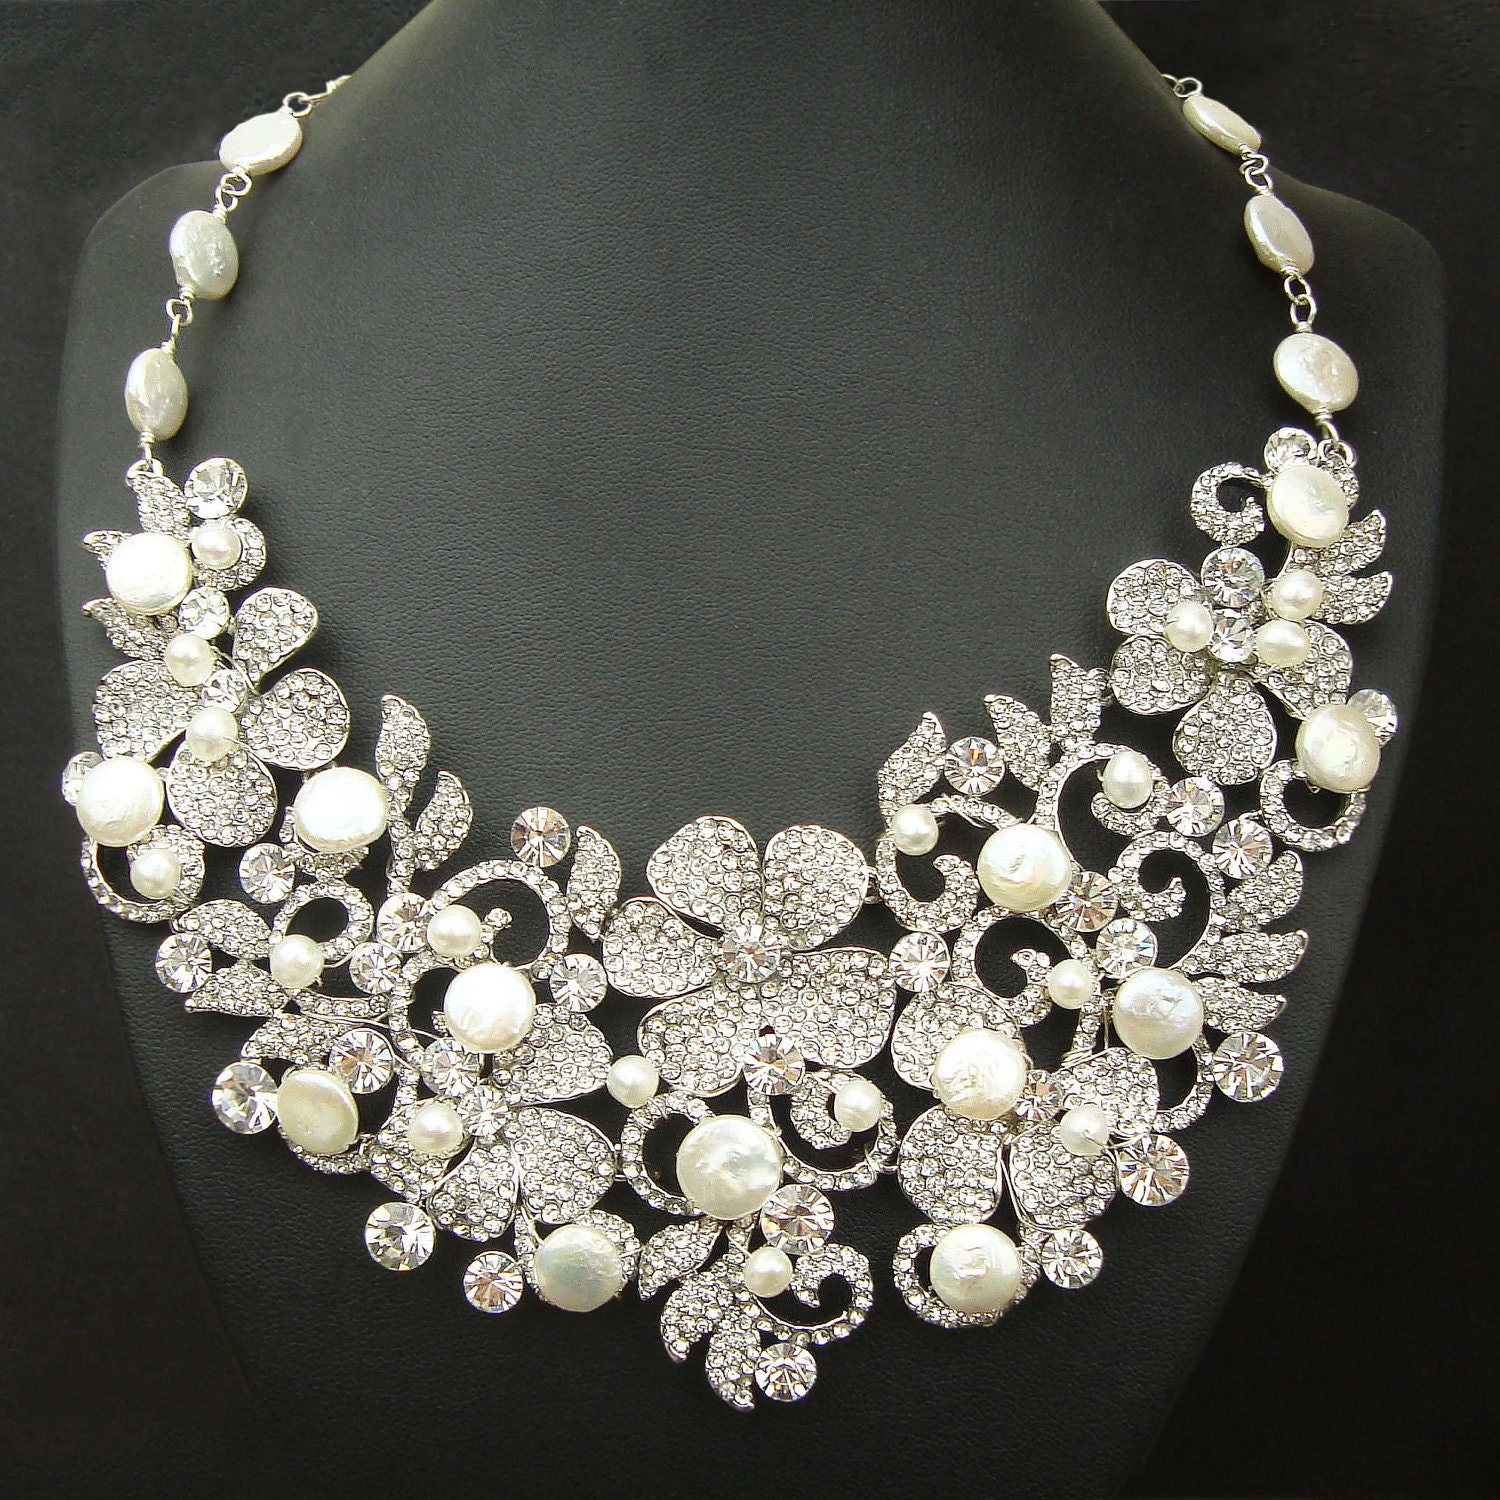 Coin pearl bridal necklace statement wedding necklace for Wedding ring necklace